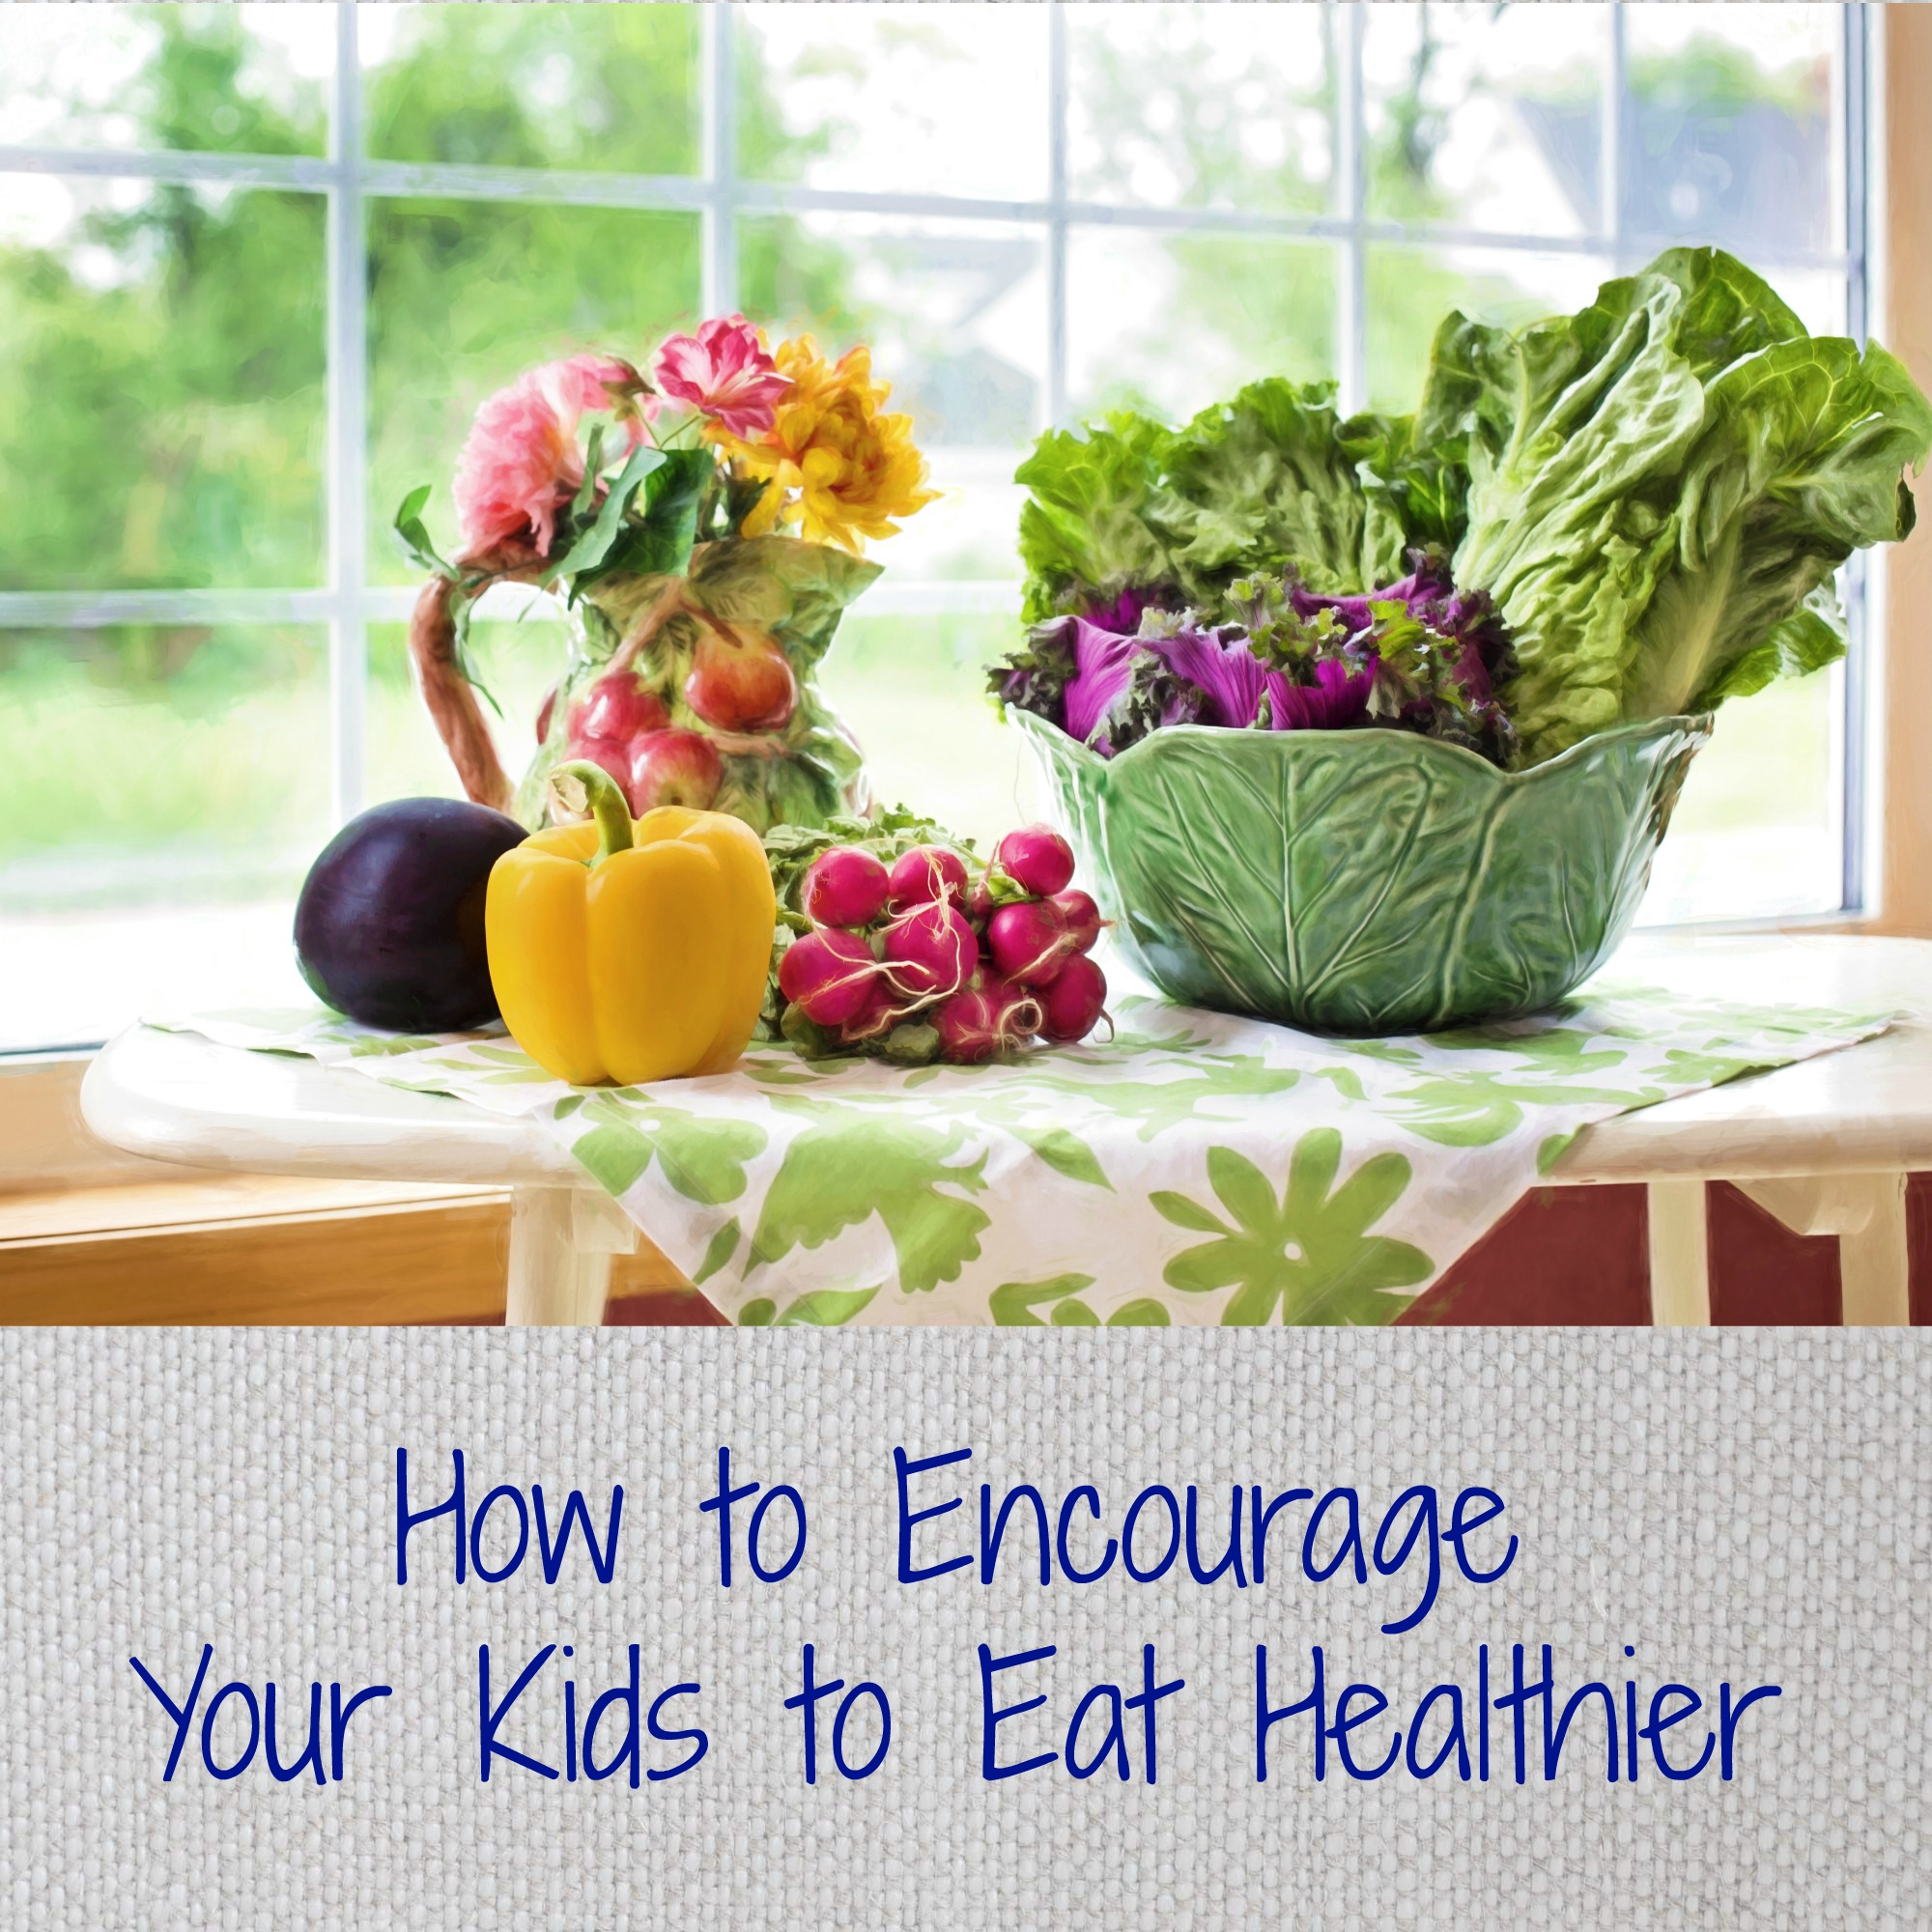 How to Encourage Your Kids to Eat Healthier